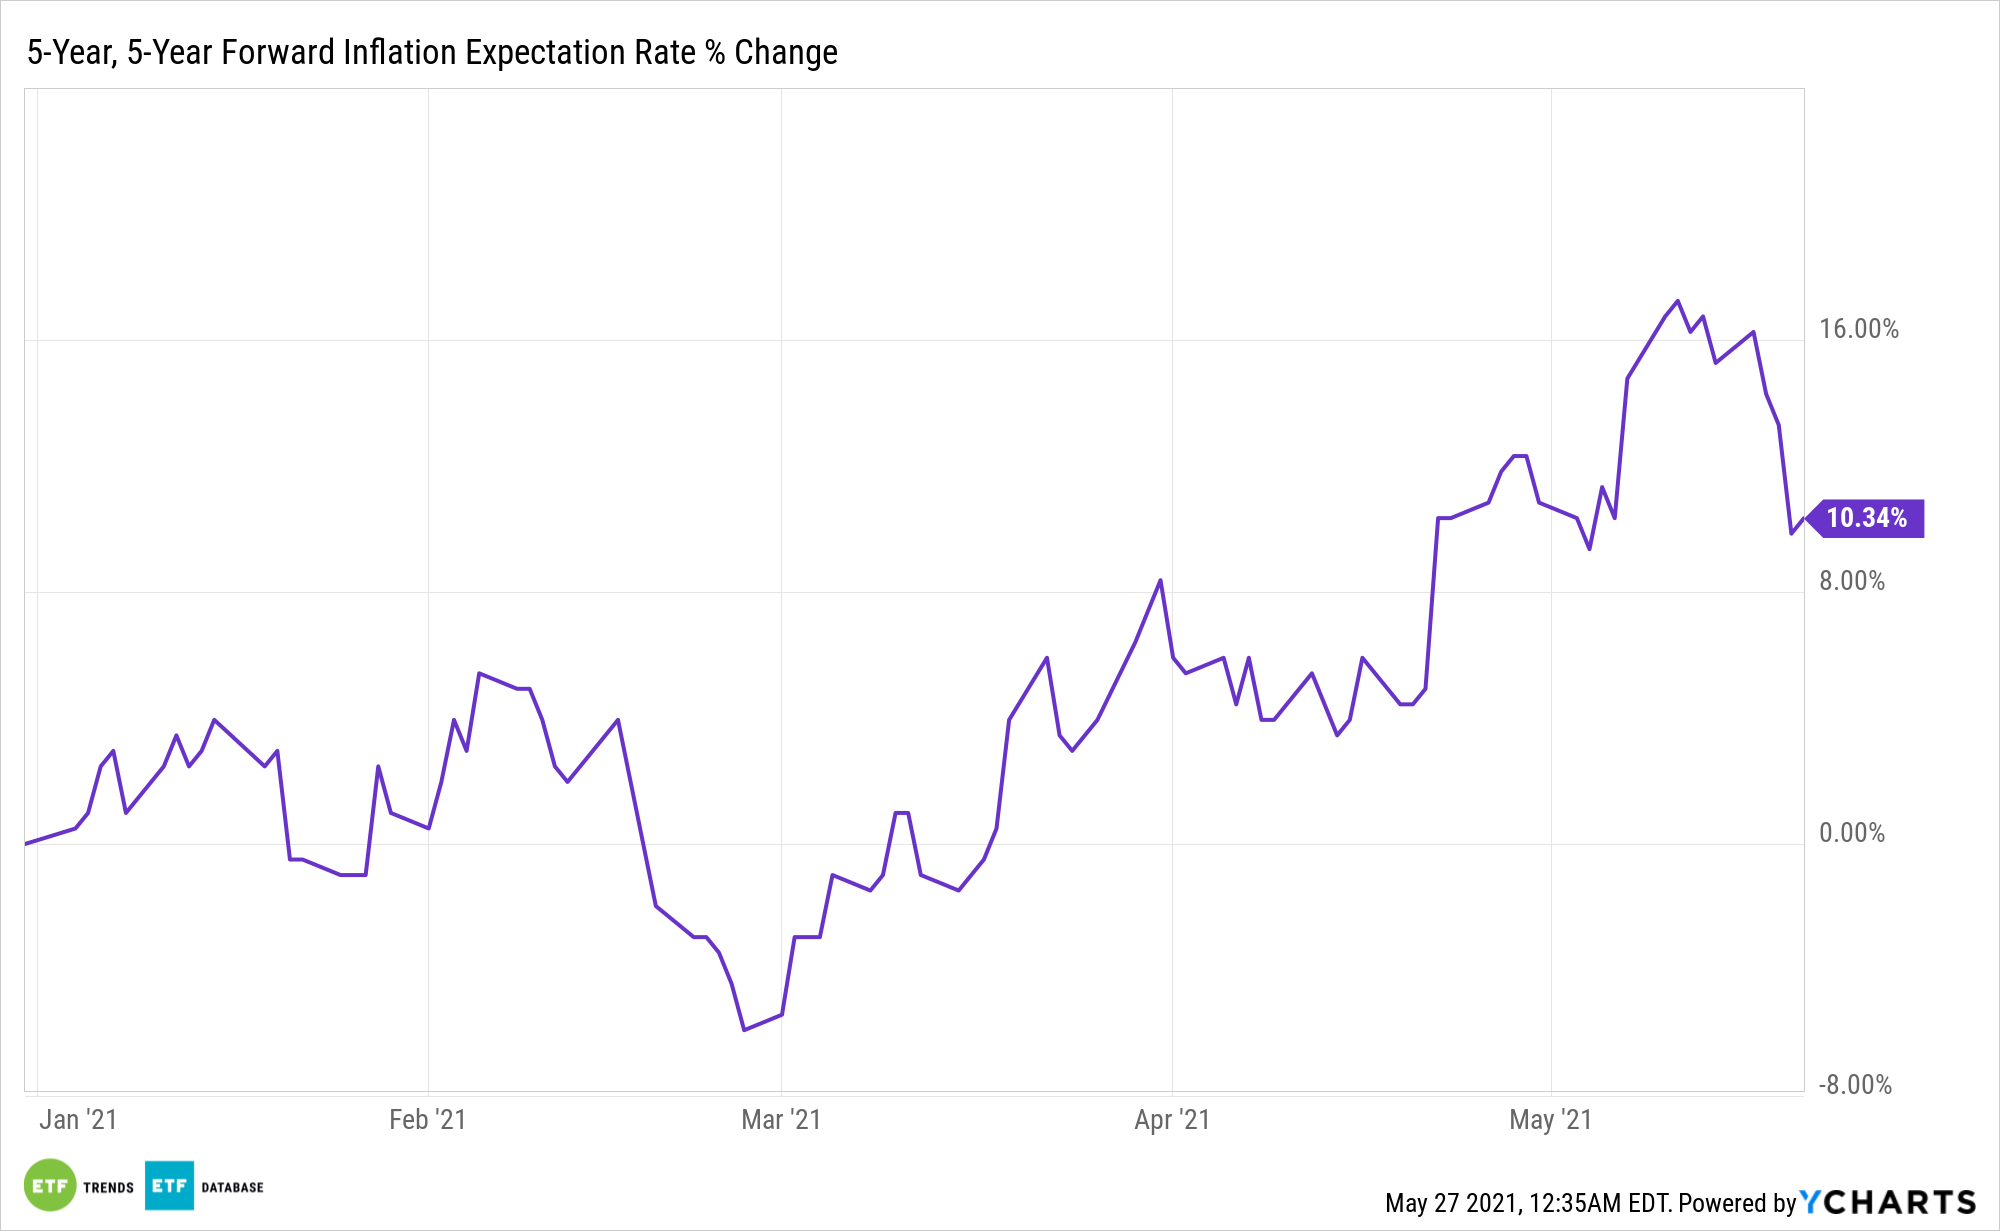 5-Year, 5-Year Forward Inflation Expectation Rate Chart